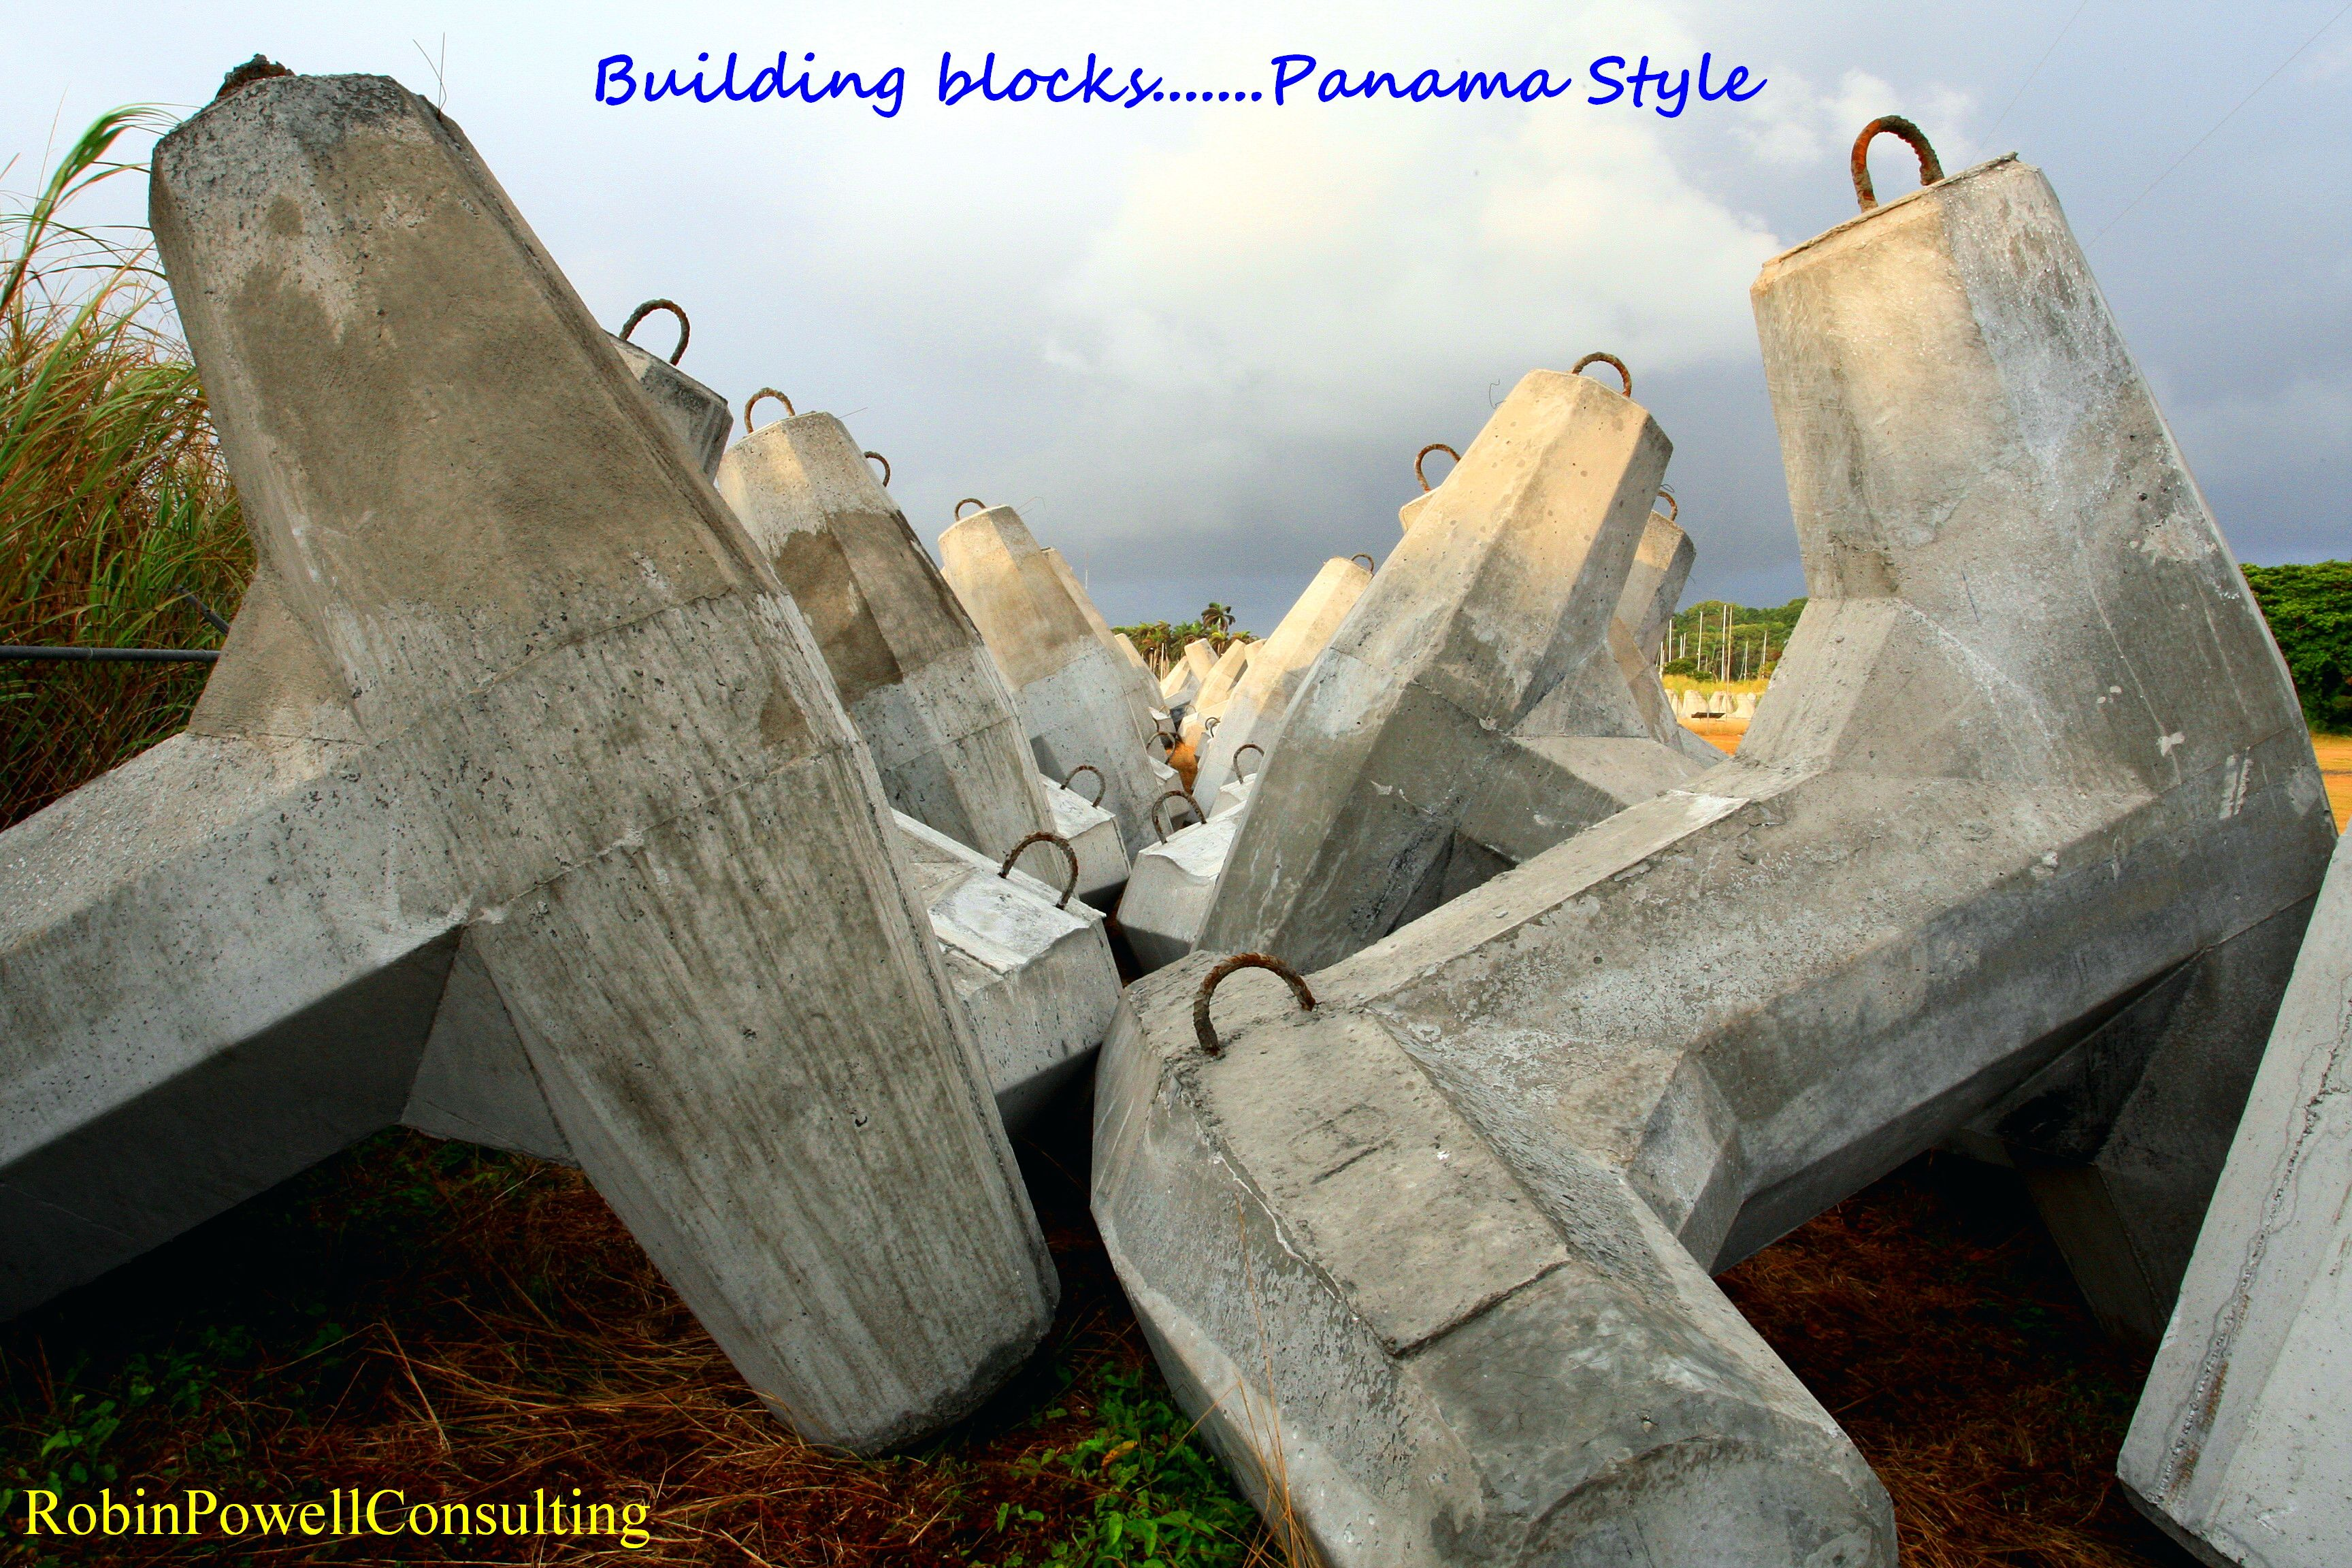 Building blocks for jetty, Panama